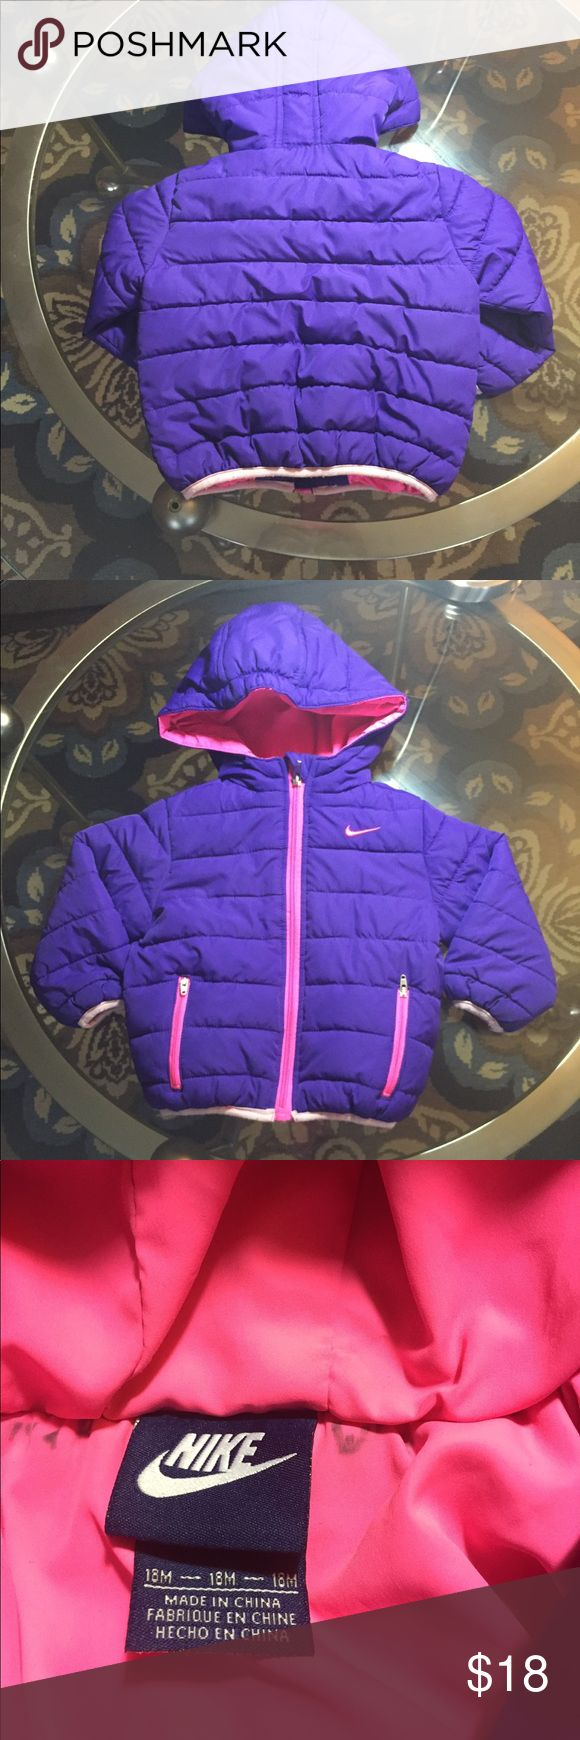 Girl's Nike Coat Light weight purple and pink Nike coat. Good Used Condition... name was written on the inside lining of the coat but has been blacked out. ✨REASONABLE offers welcome✨  ✨Bundle and Save✨ Nike Jackets & Coats Puffers